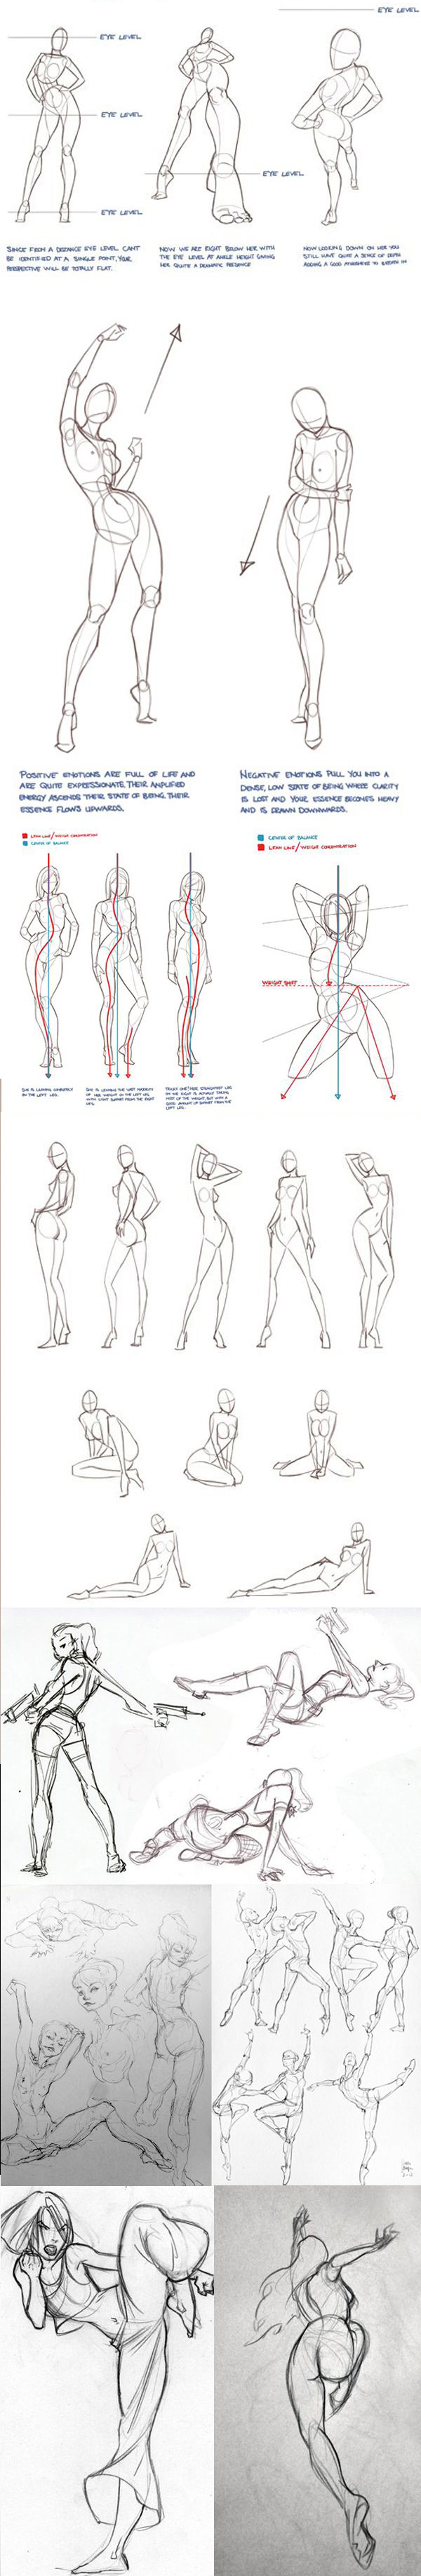 collect | Anatomy, Poses,... | Pinterest | Drawing poses, Drawing ...